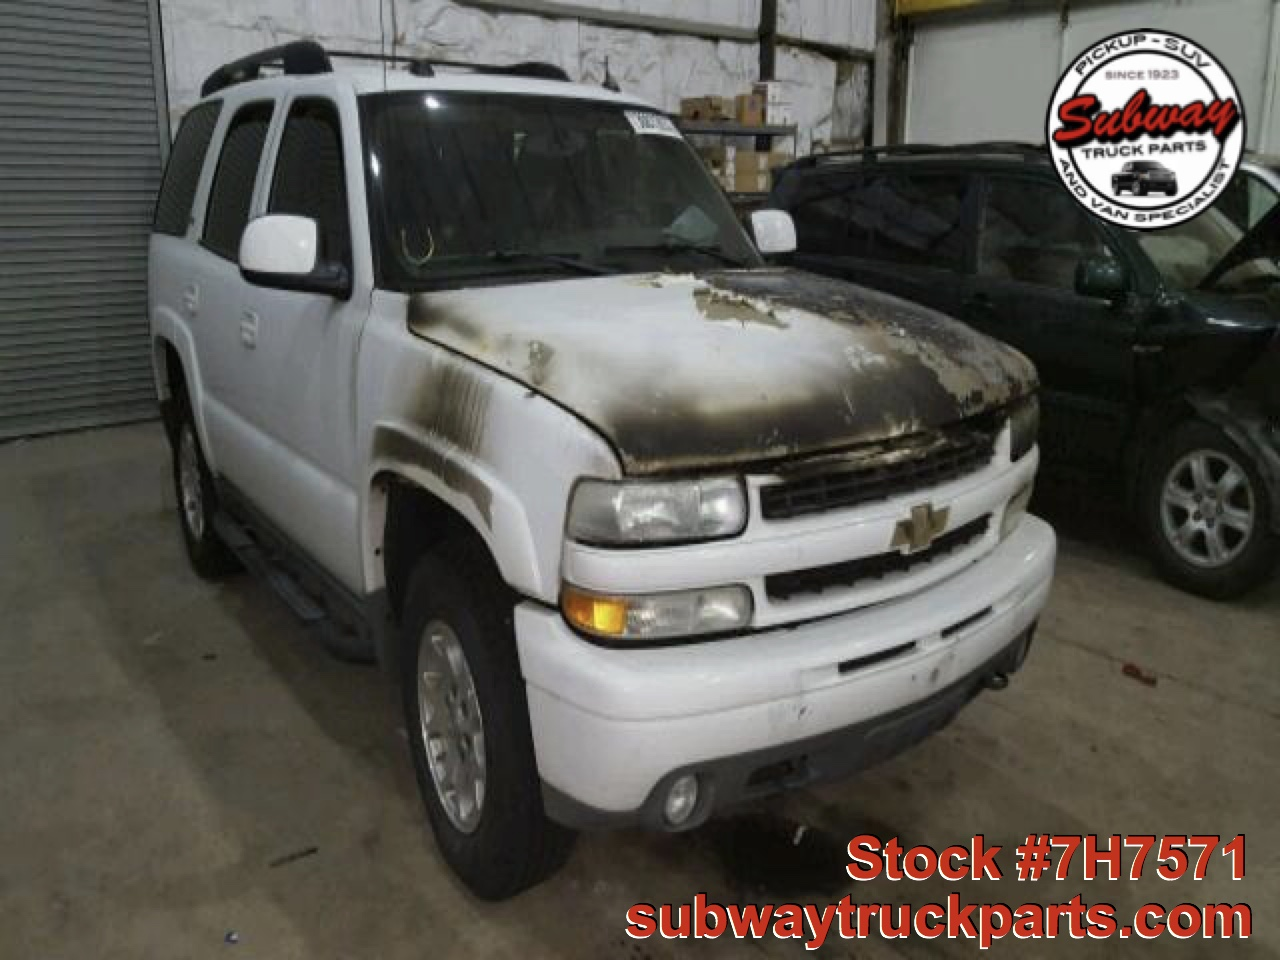 Used Parts 2005 Chevrolet Tahoe 5.3L Z71 4×4